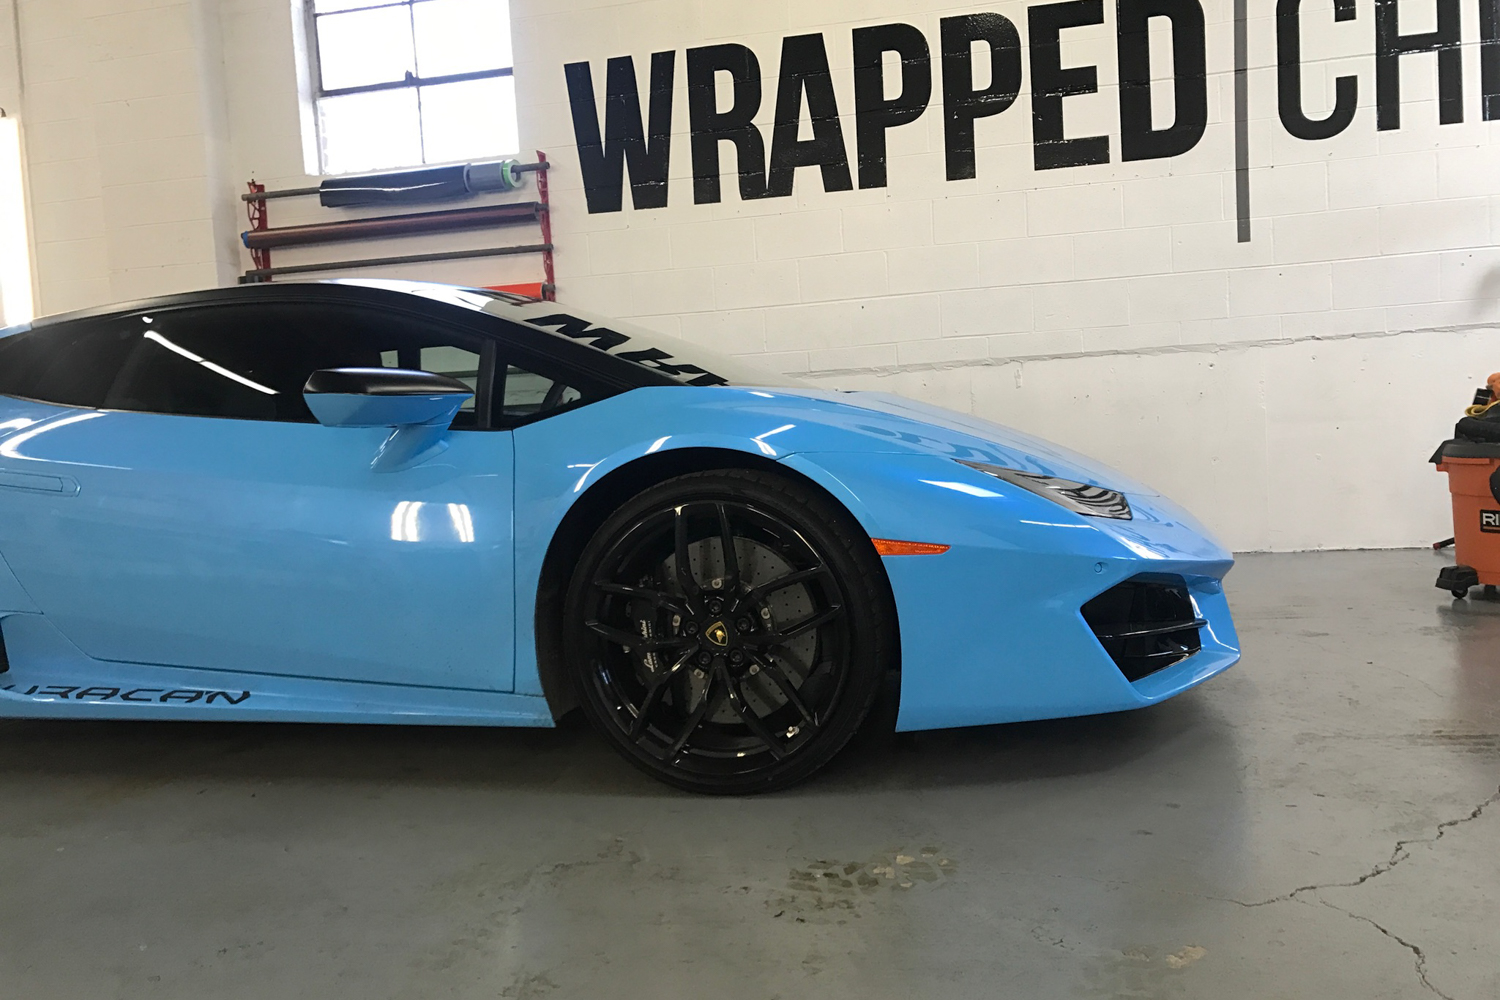 lambo-vehicle-wrap-protection.JPG